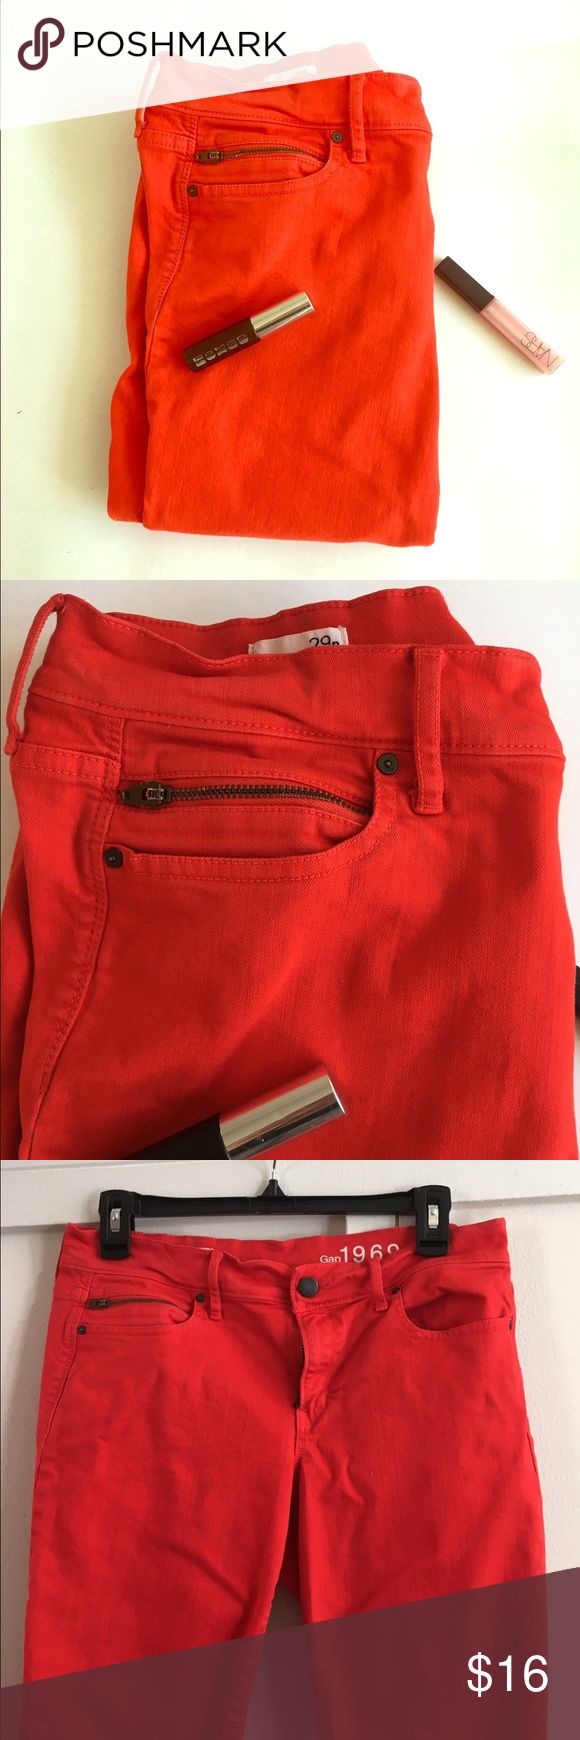 GAP RED LEGGING JEANS Tomato red legging jeans with zippers in pocket and back as shown. Ankle length. A few small spots on the back of each leg as shown. Zipper closure with button. Inseam is 24 inches. Rise is 8.5 inches. GAP Jeans Ankle & Cropped